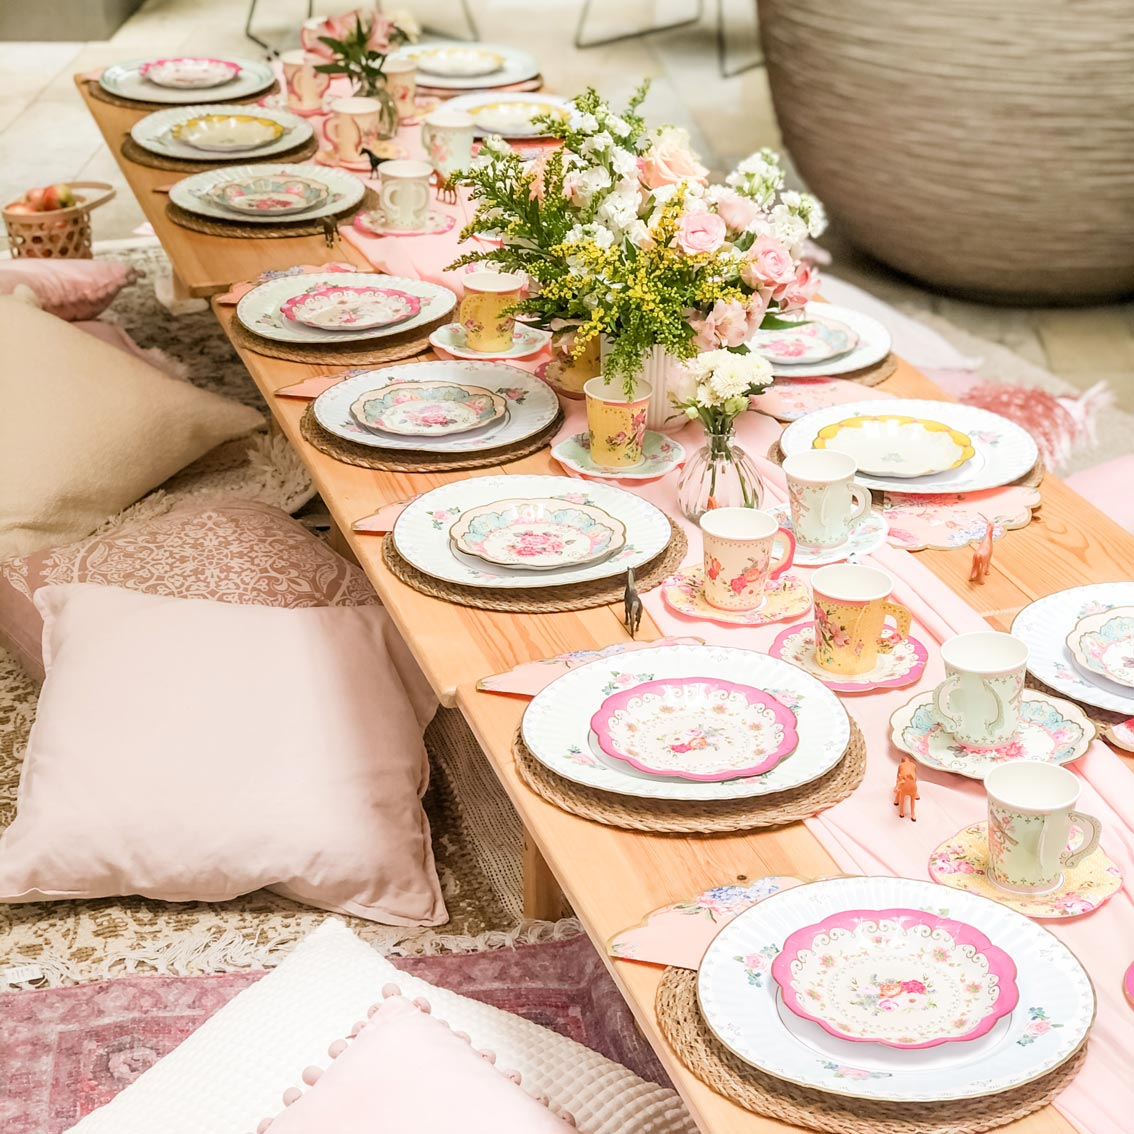 Beth's Tablescape